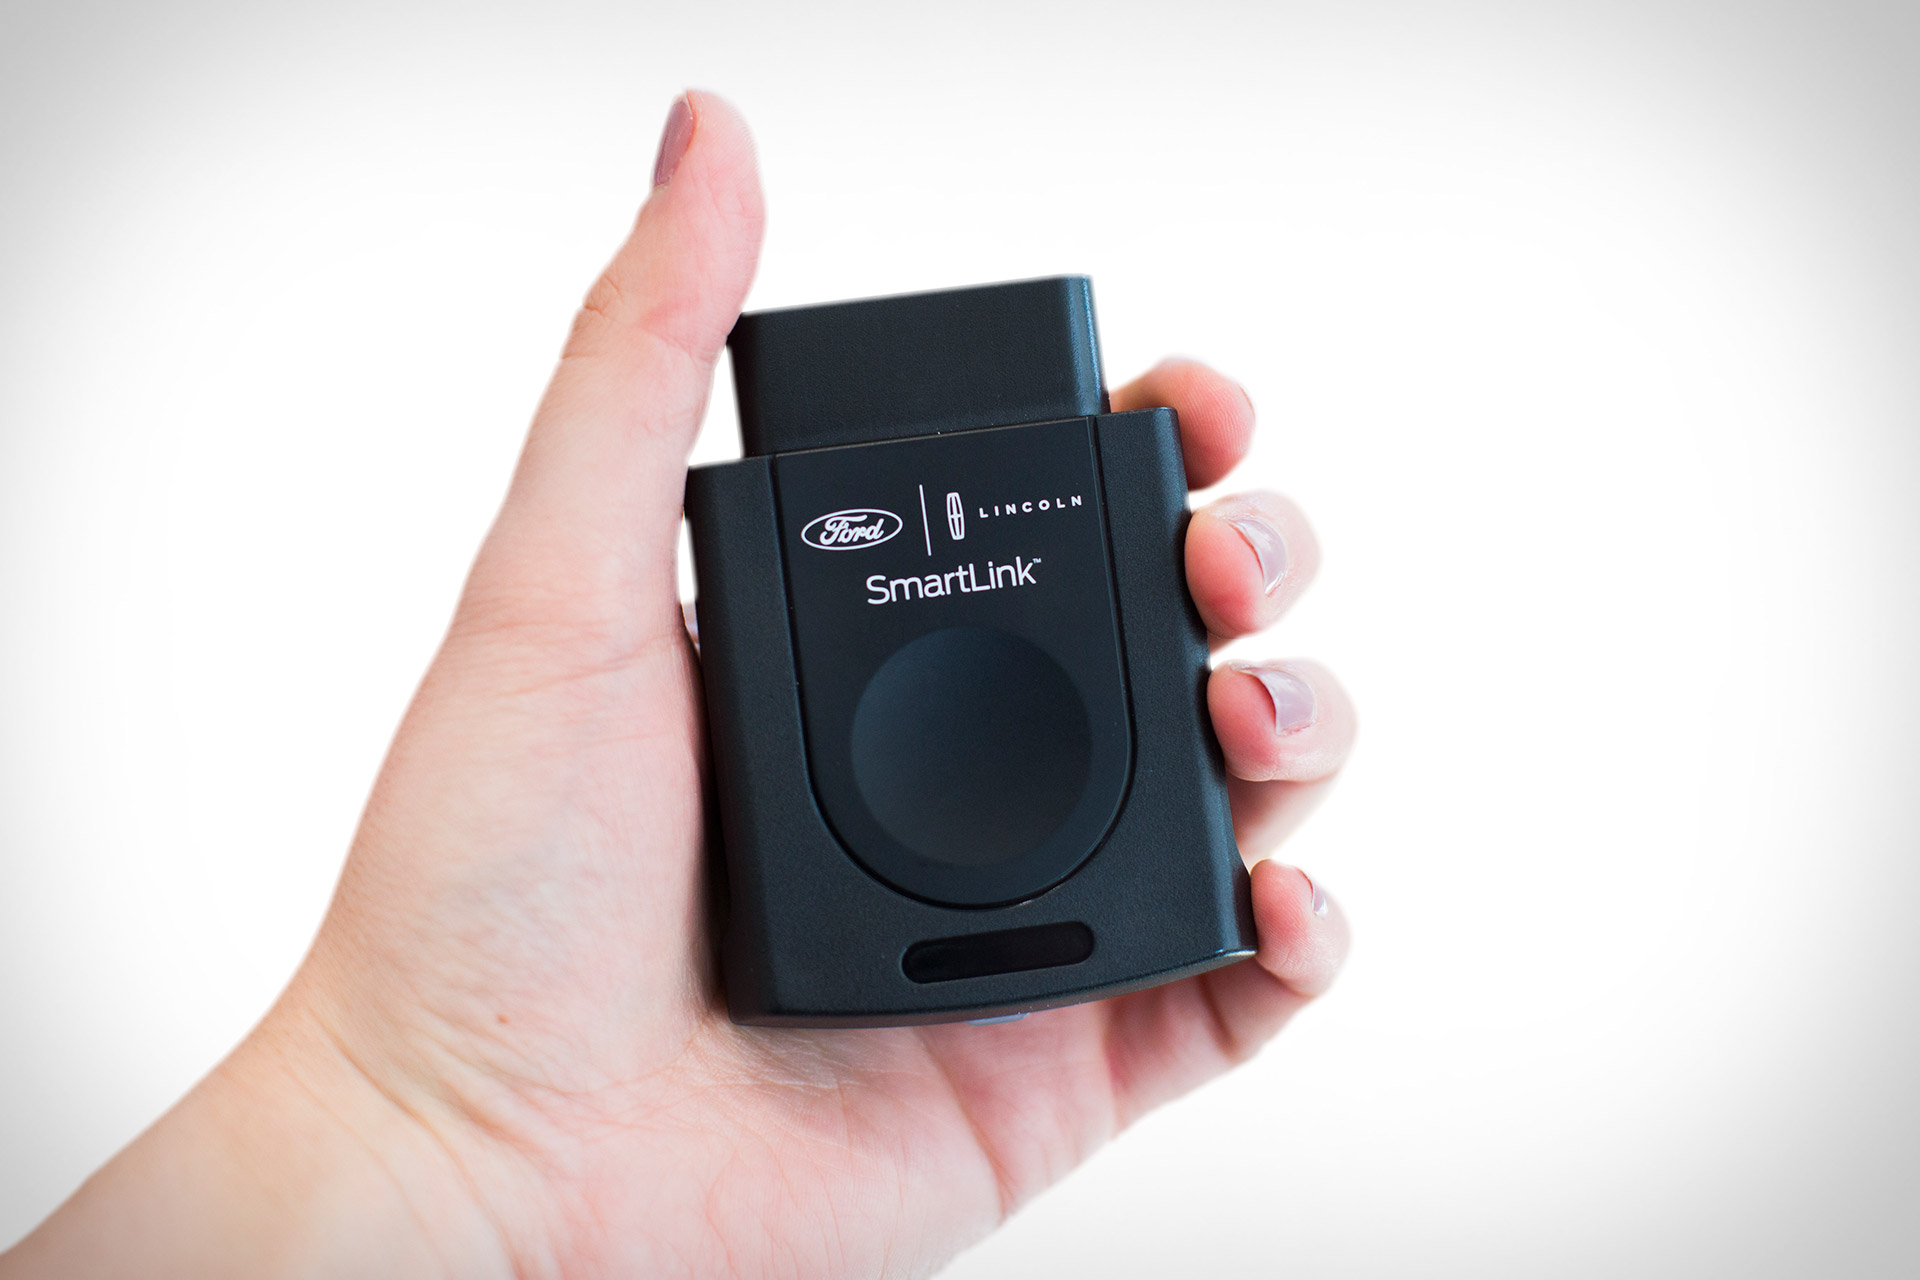 Unlock Car With Phone >> FordPass SmartLink | Uncrate